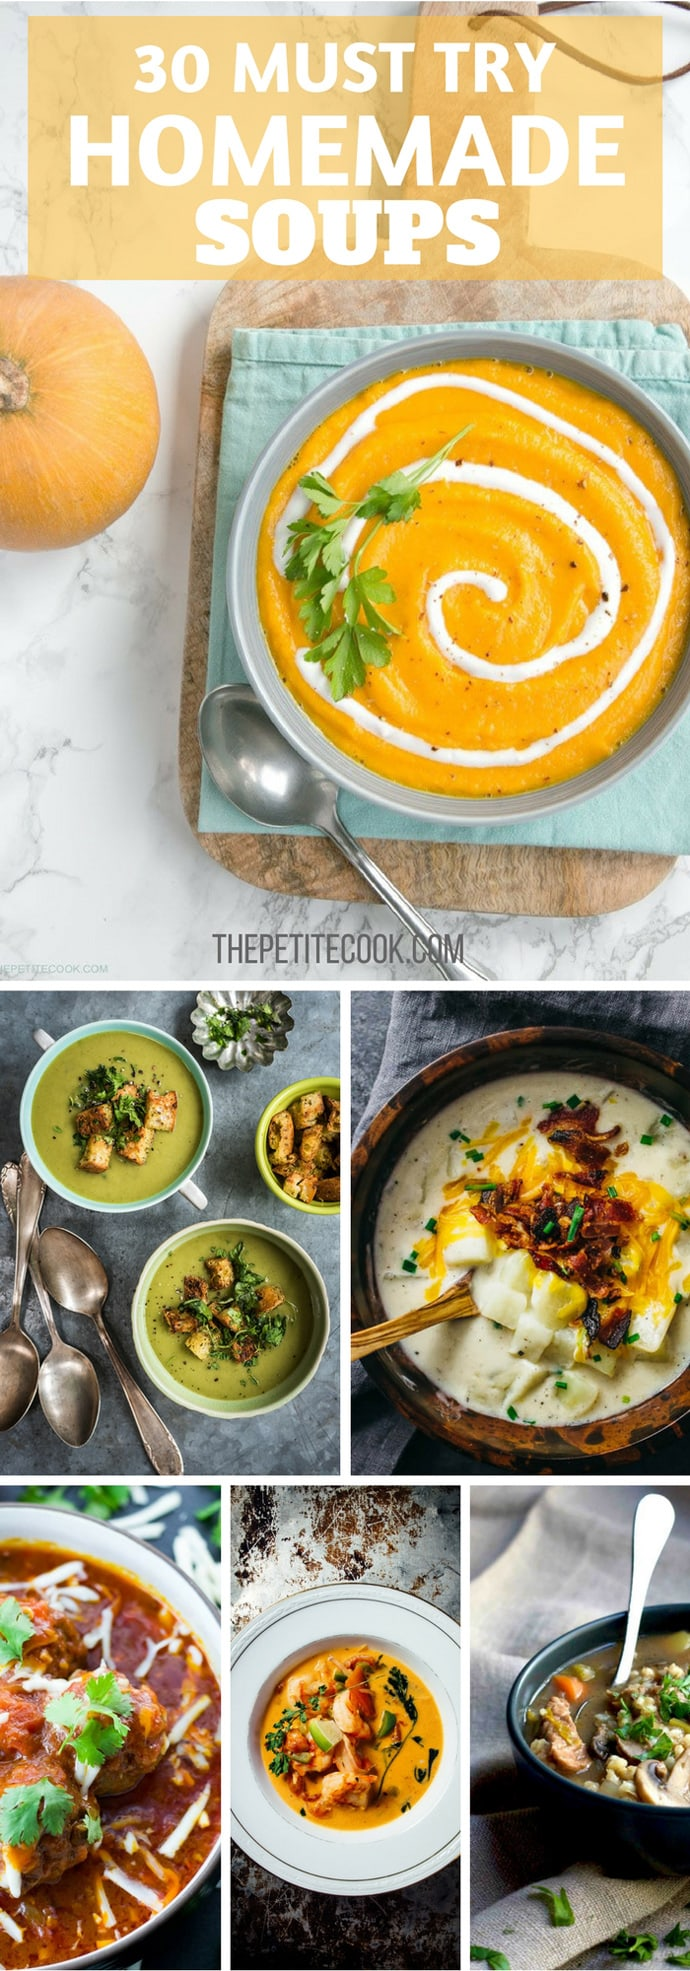 30 Homemade Soup Recipes You Need To Try! Loads of #glutenfree #vegetarian #dairyfree #pescatarian and #vegan options! The Petite Cook